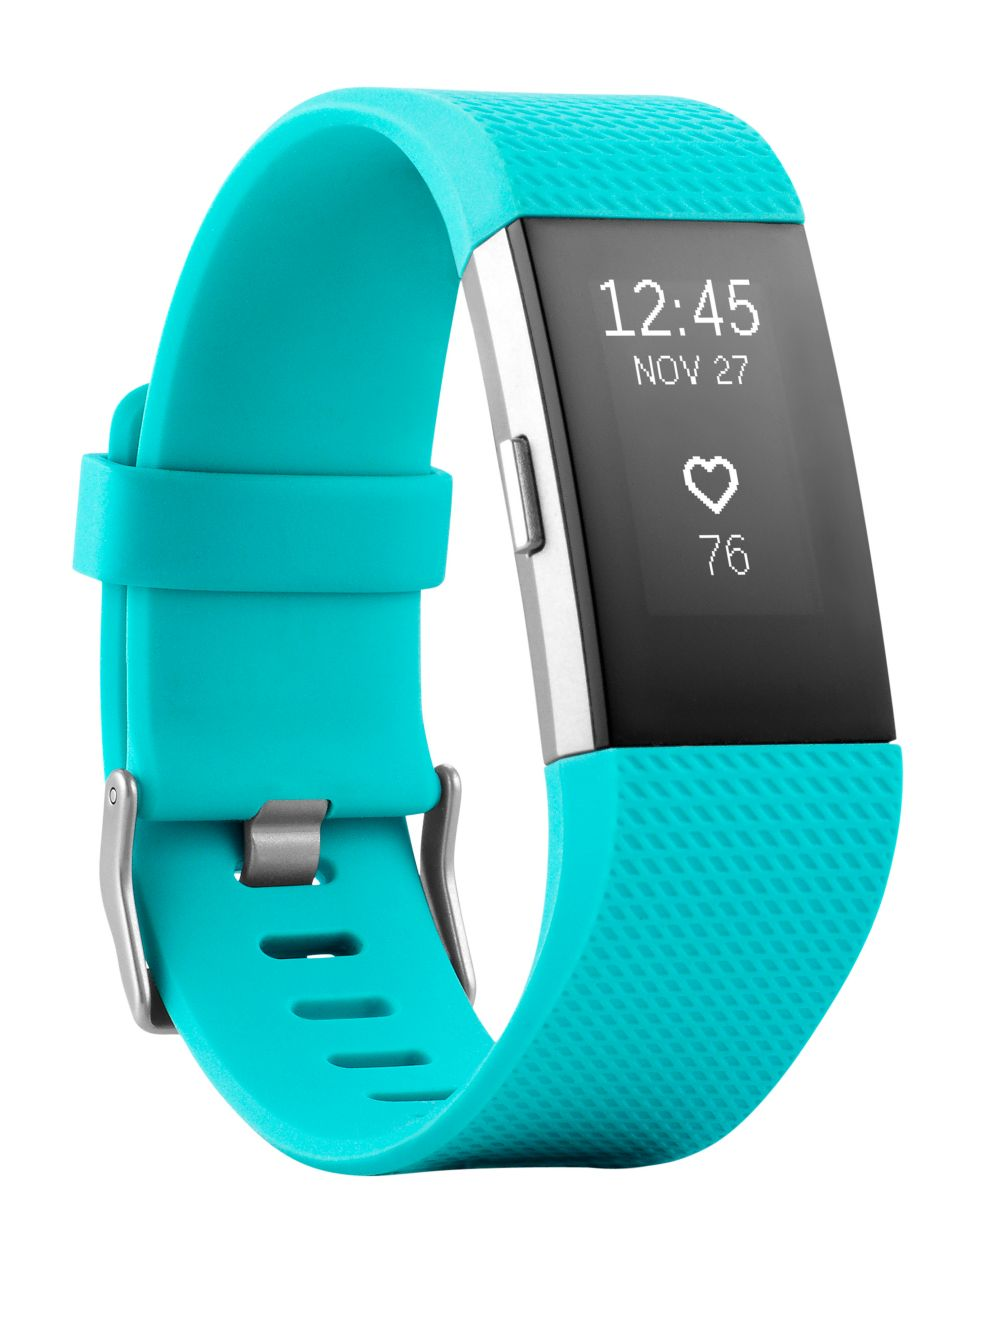 Fitbit// Price: $149.95// Purchase at Lord & Taylor stores // (Photo: Lord & Taylor)